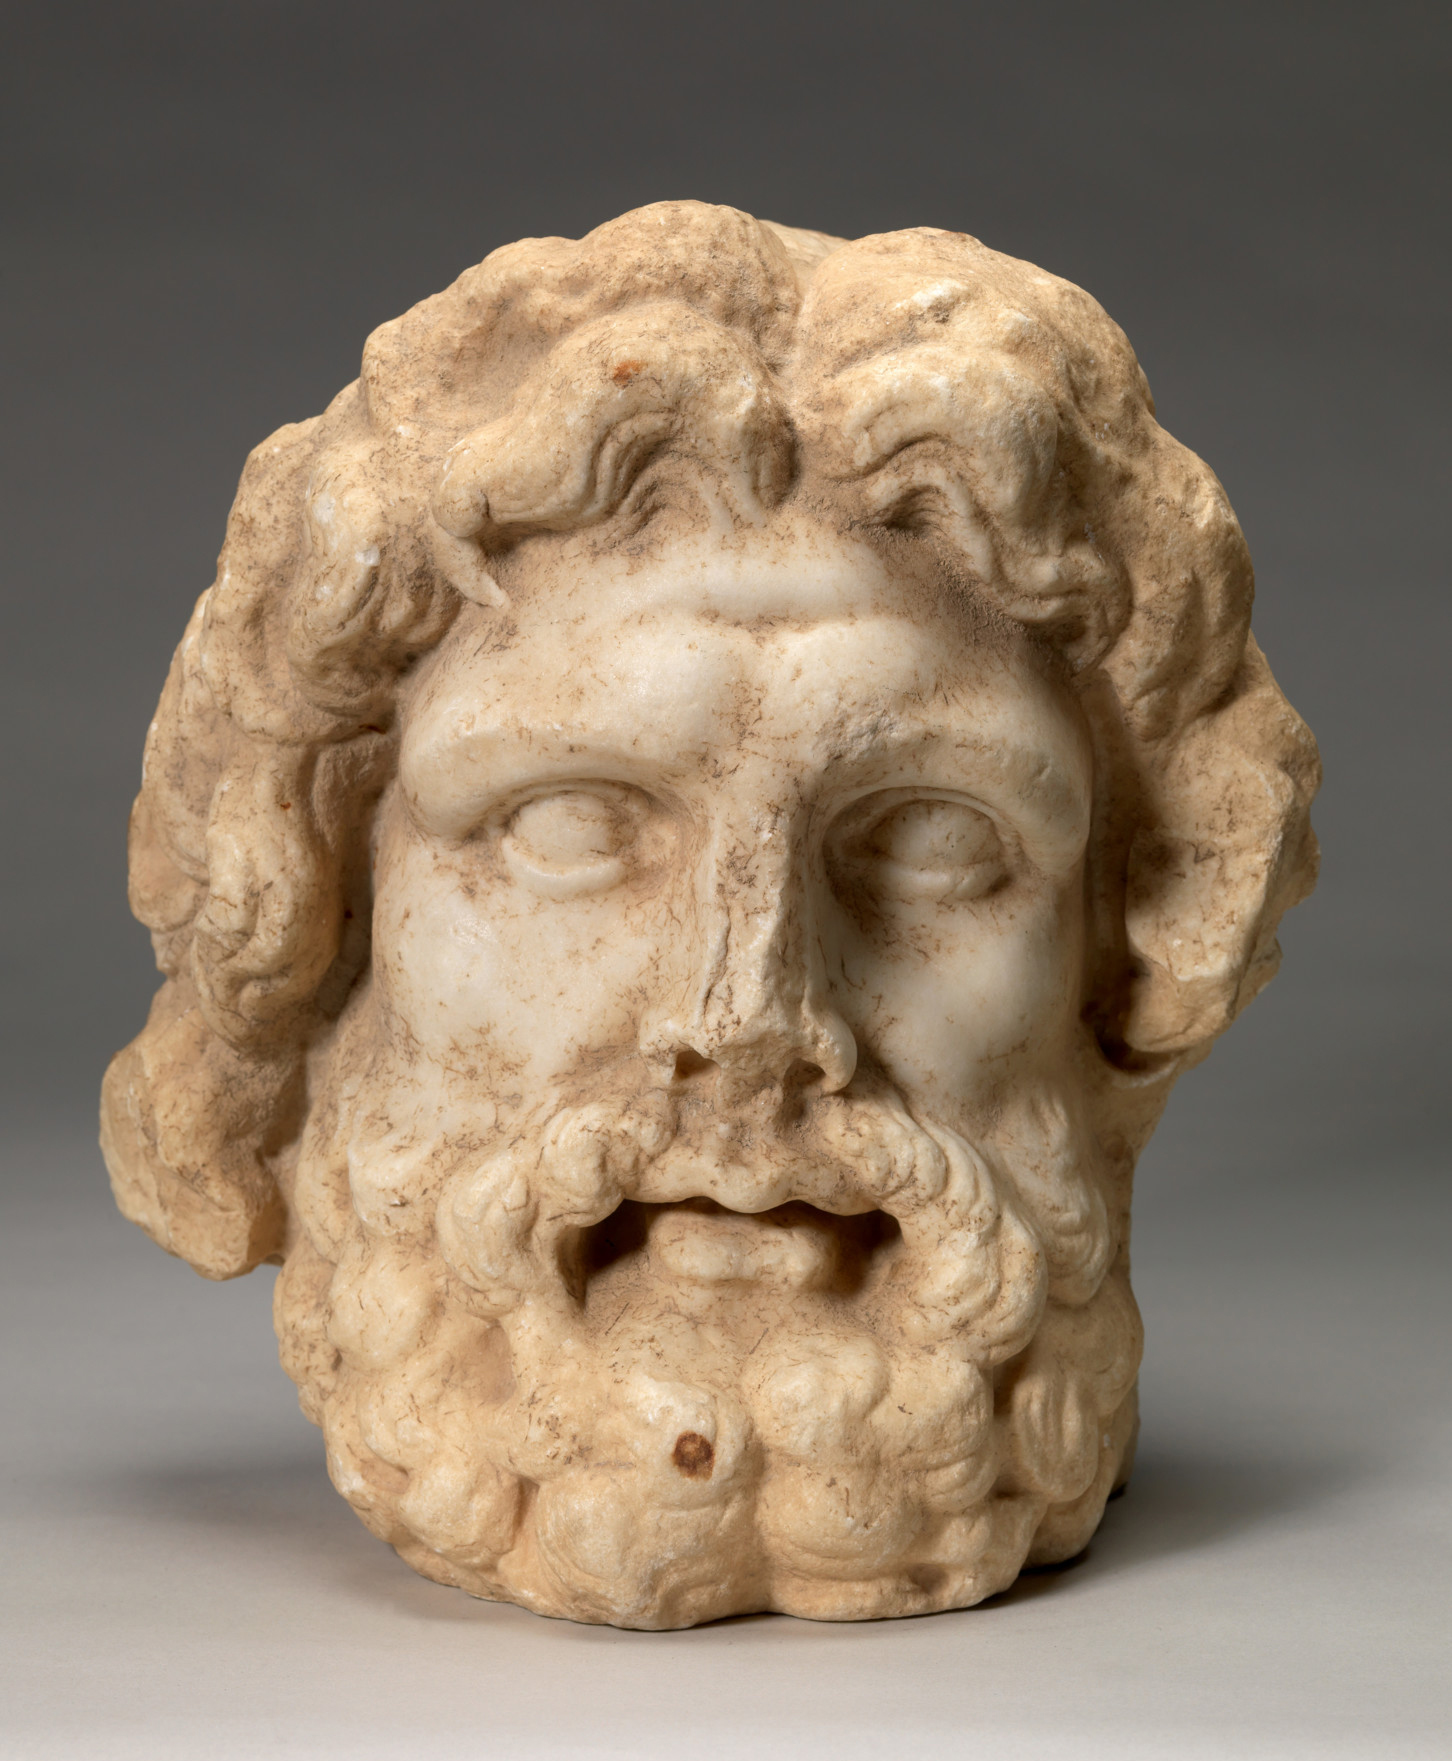 Greek or Roman, Head of a God, 150BC-100BCE. Parian marble, 11 7/8 x 11 1/8 x 7 1/4 in. Museum purchase, Greylock Foundation, Karl E. Weston Memorial Fund. (63.34)